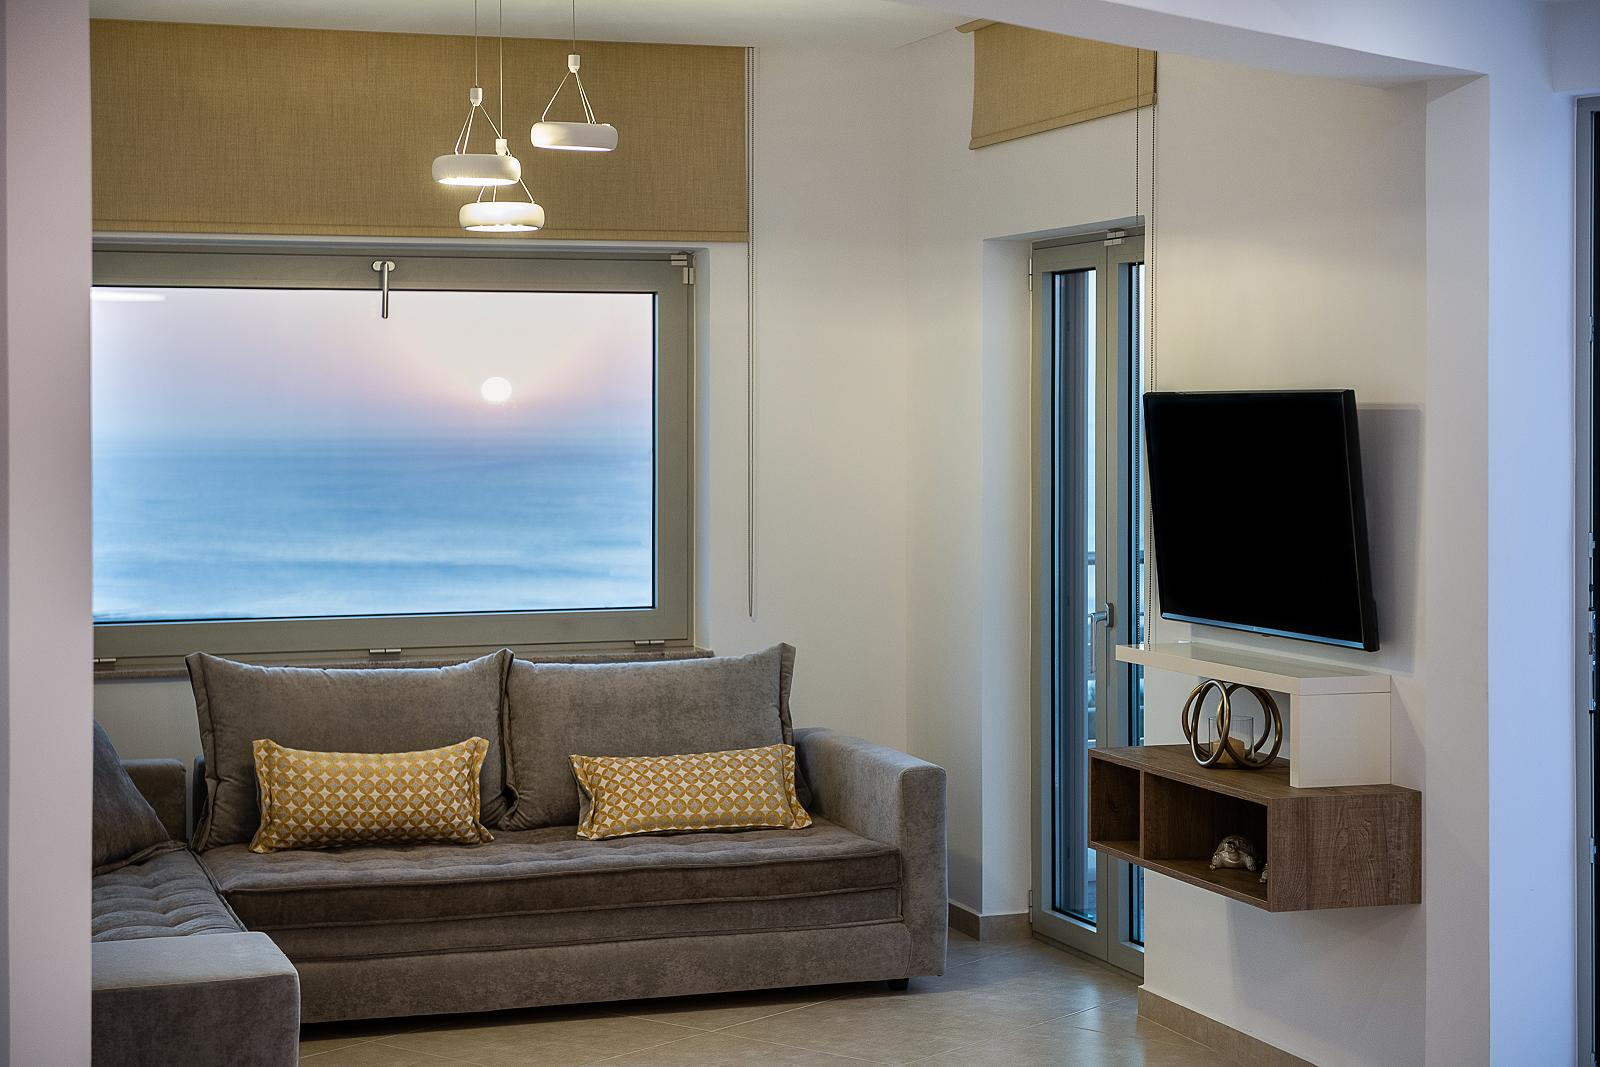 interior-sunset-seaview